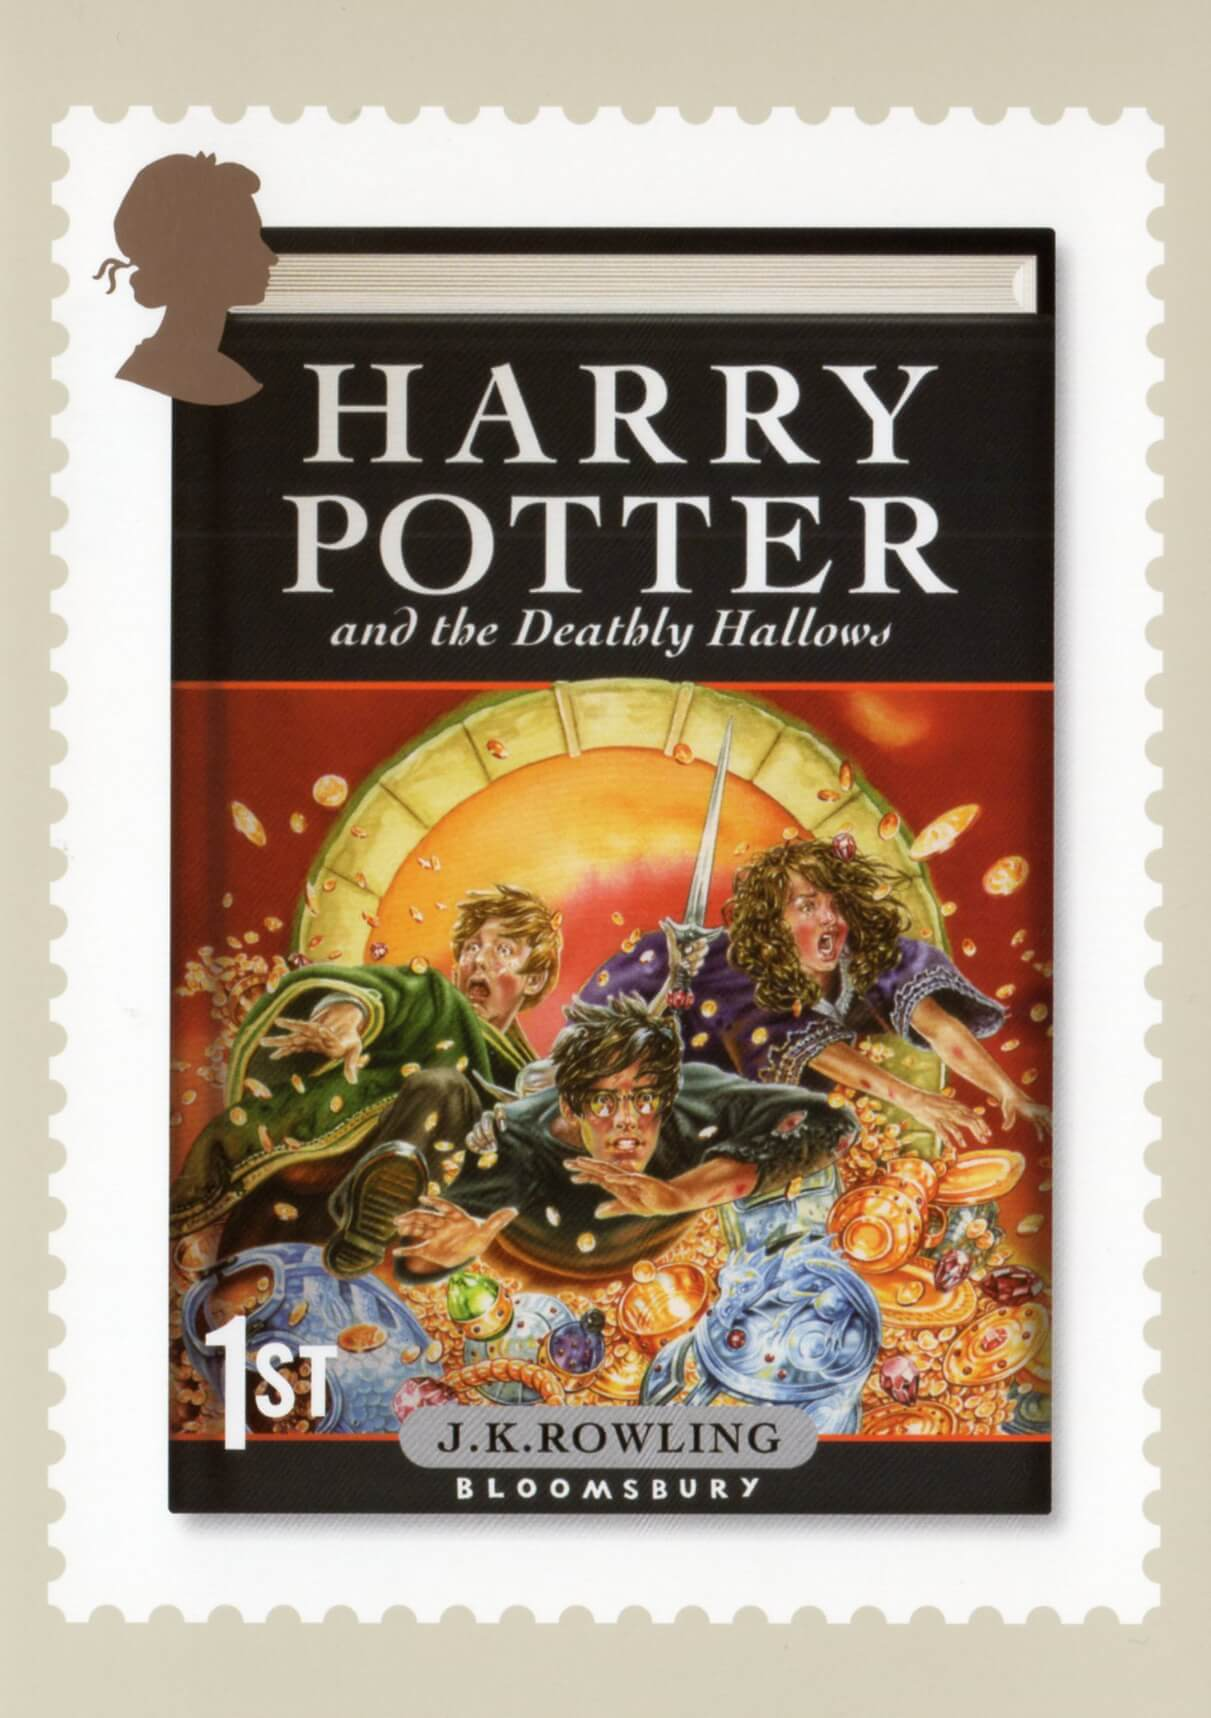 Harry Potter 2007  Collect GB Stamps